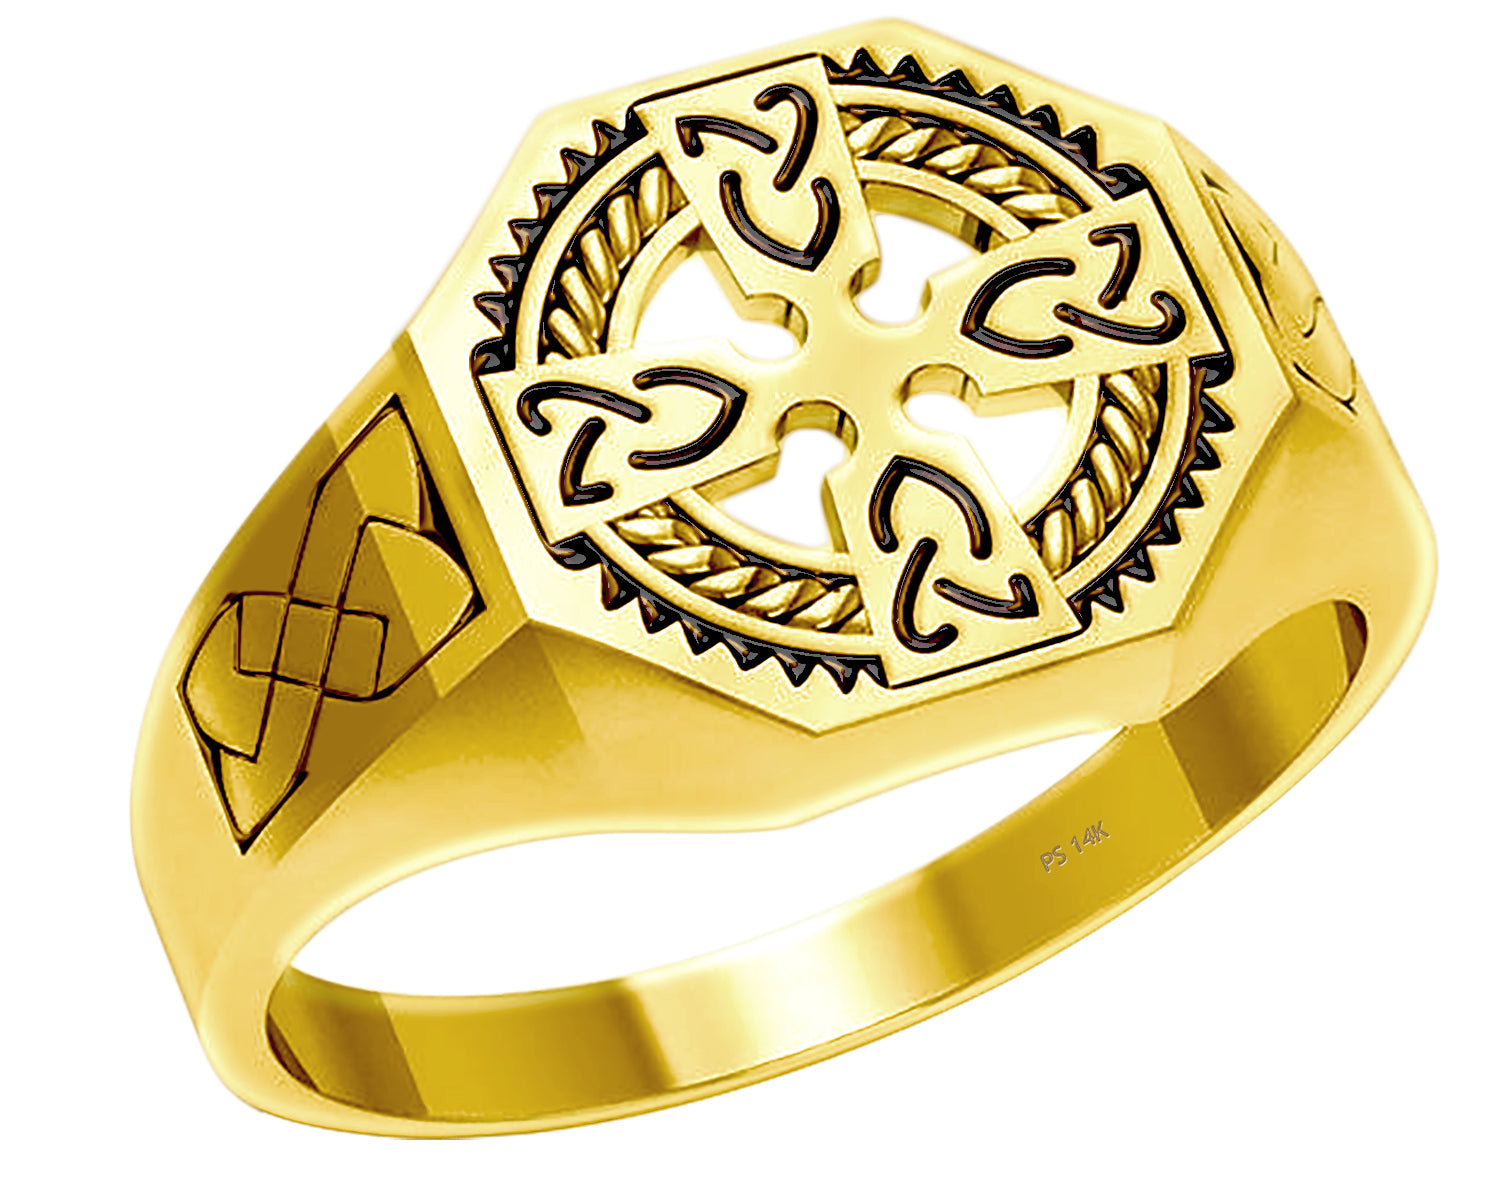 Cross Ring With Celtic Cross In Gold - Top View